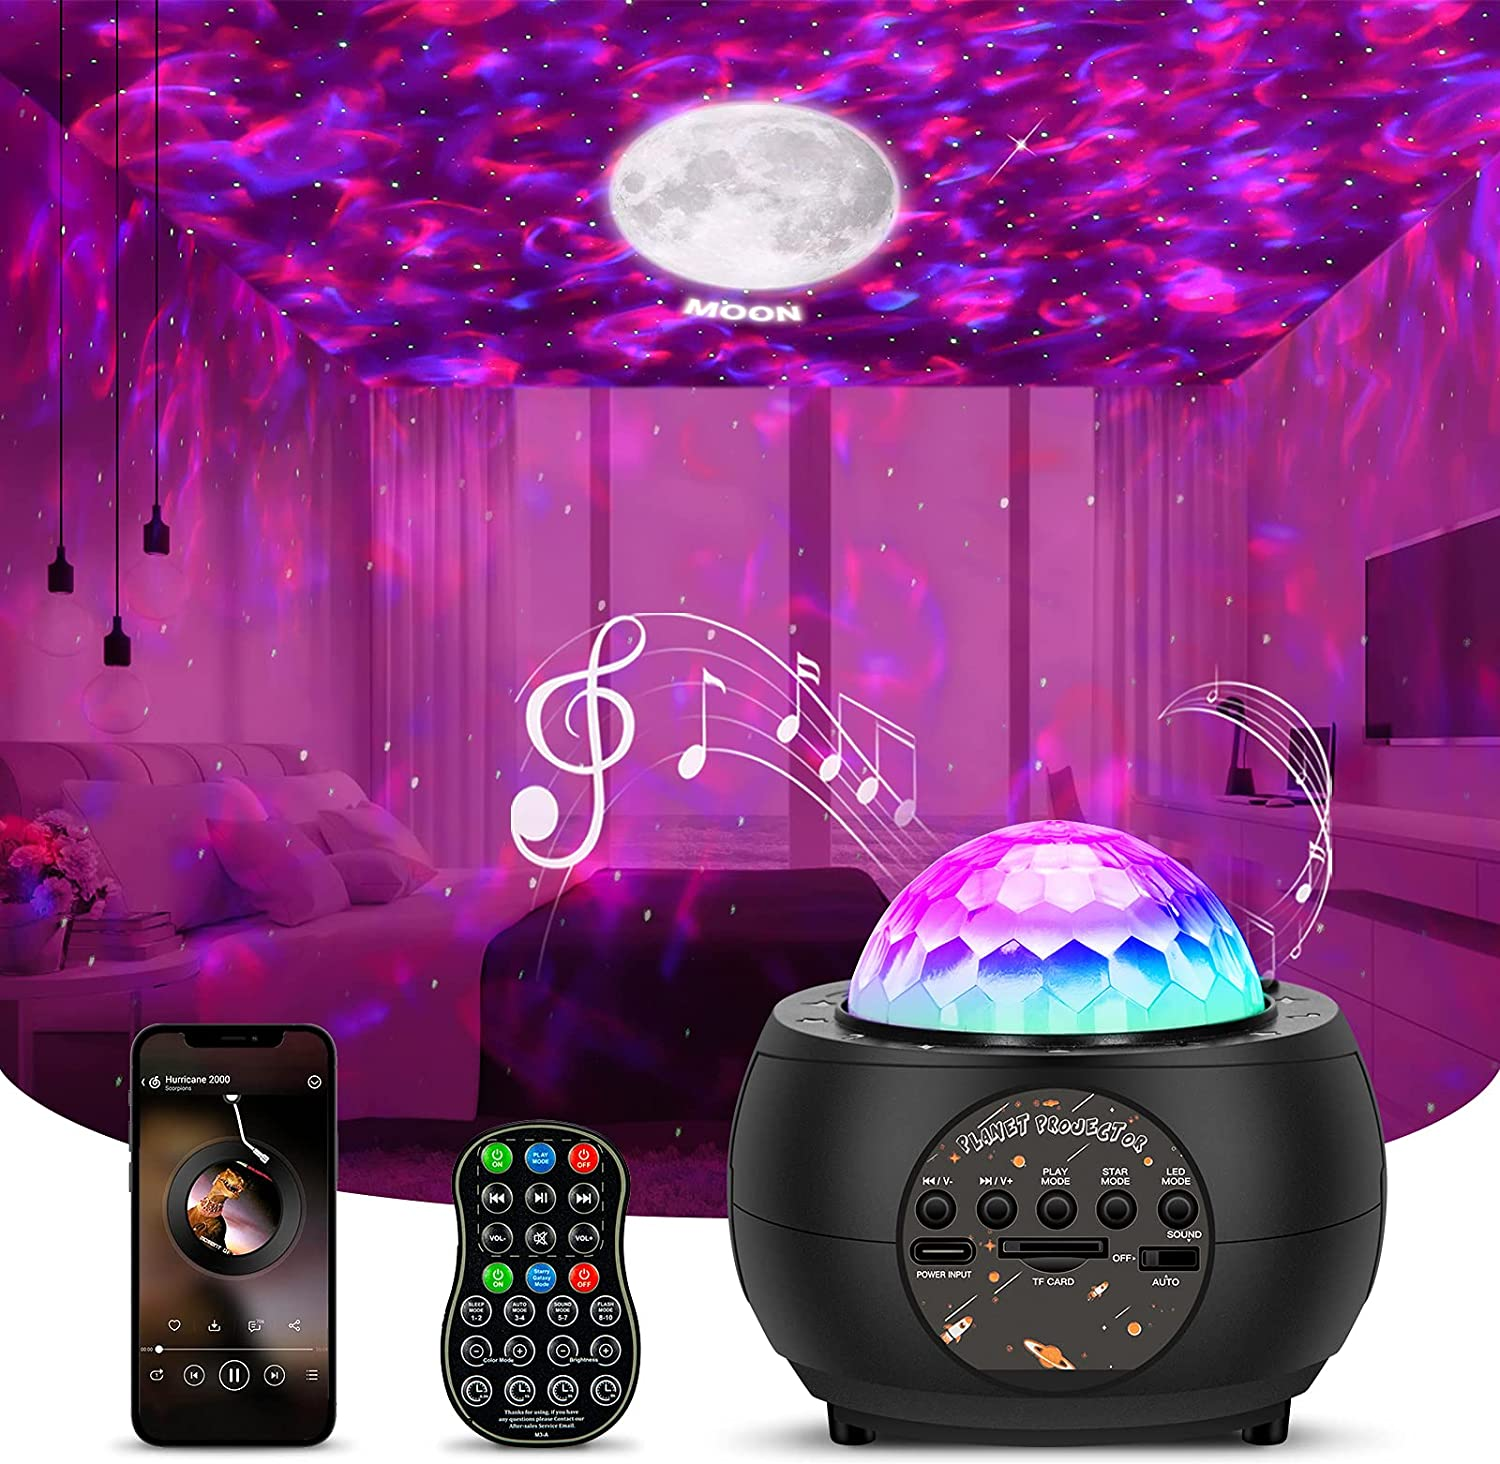 IMILLET Star Projector, 3 in 1 Planet Galaxy Projector 15 Colors Ocean Wave Night Light Projector with Remote Control & Music Speaker, Nebula Cloud Starlight Projector for Kids Bedroom Room Decor